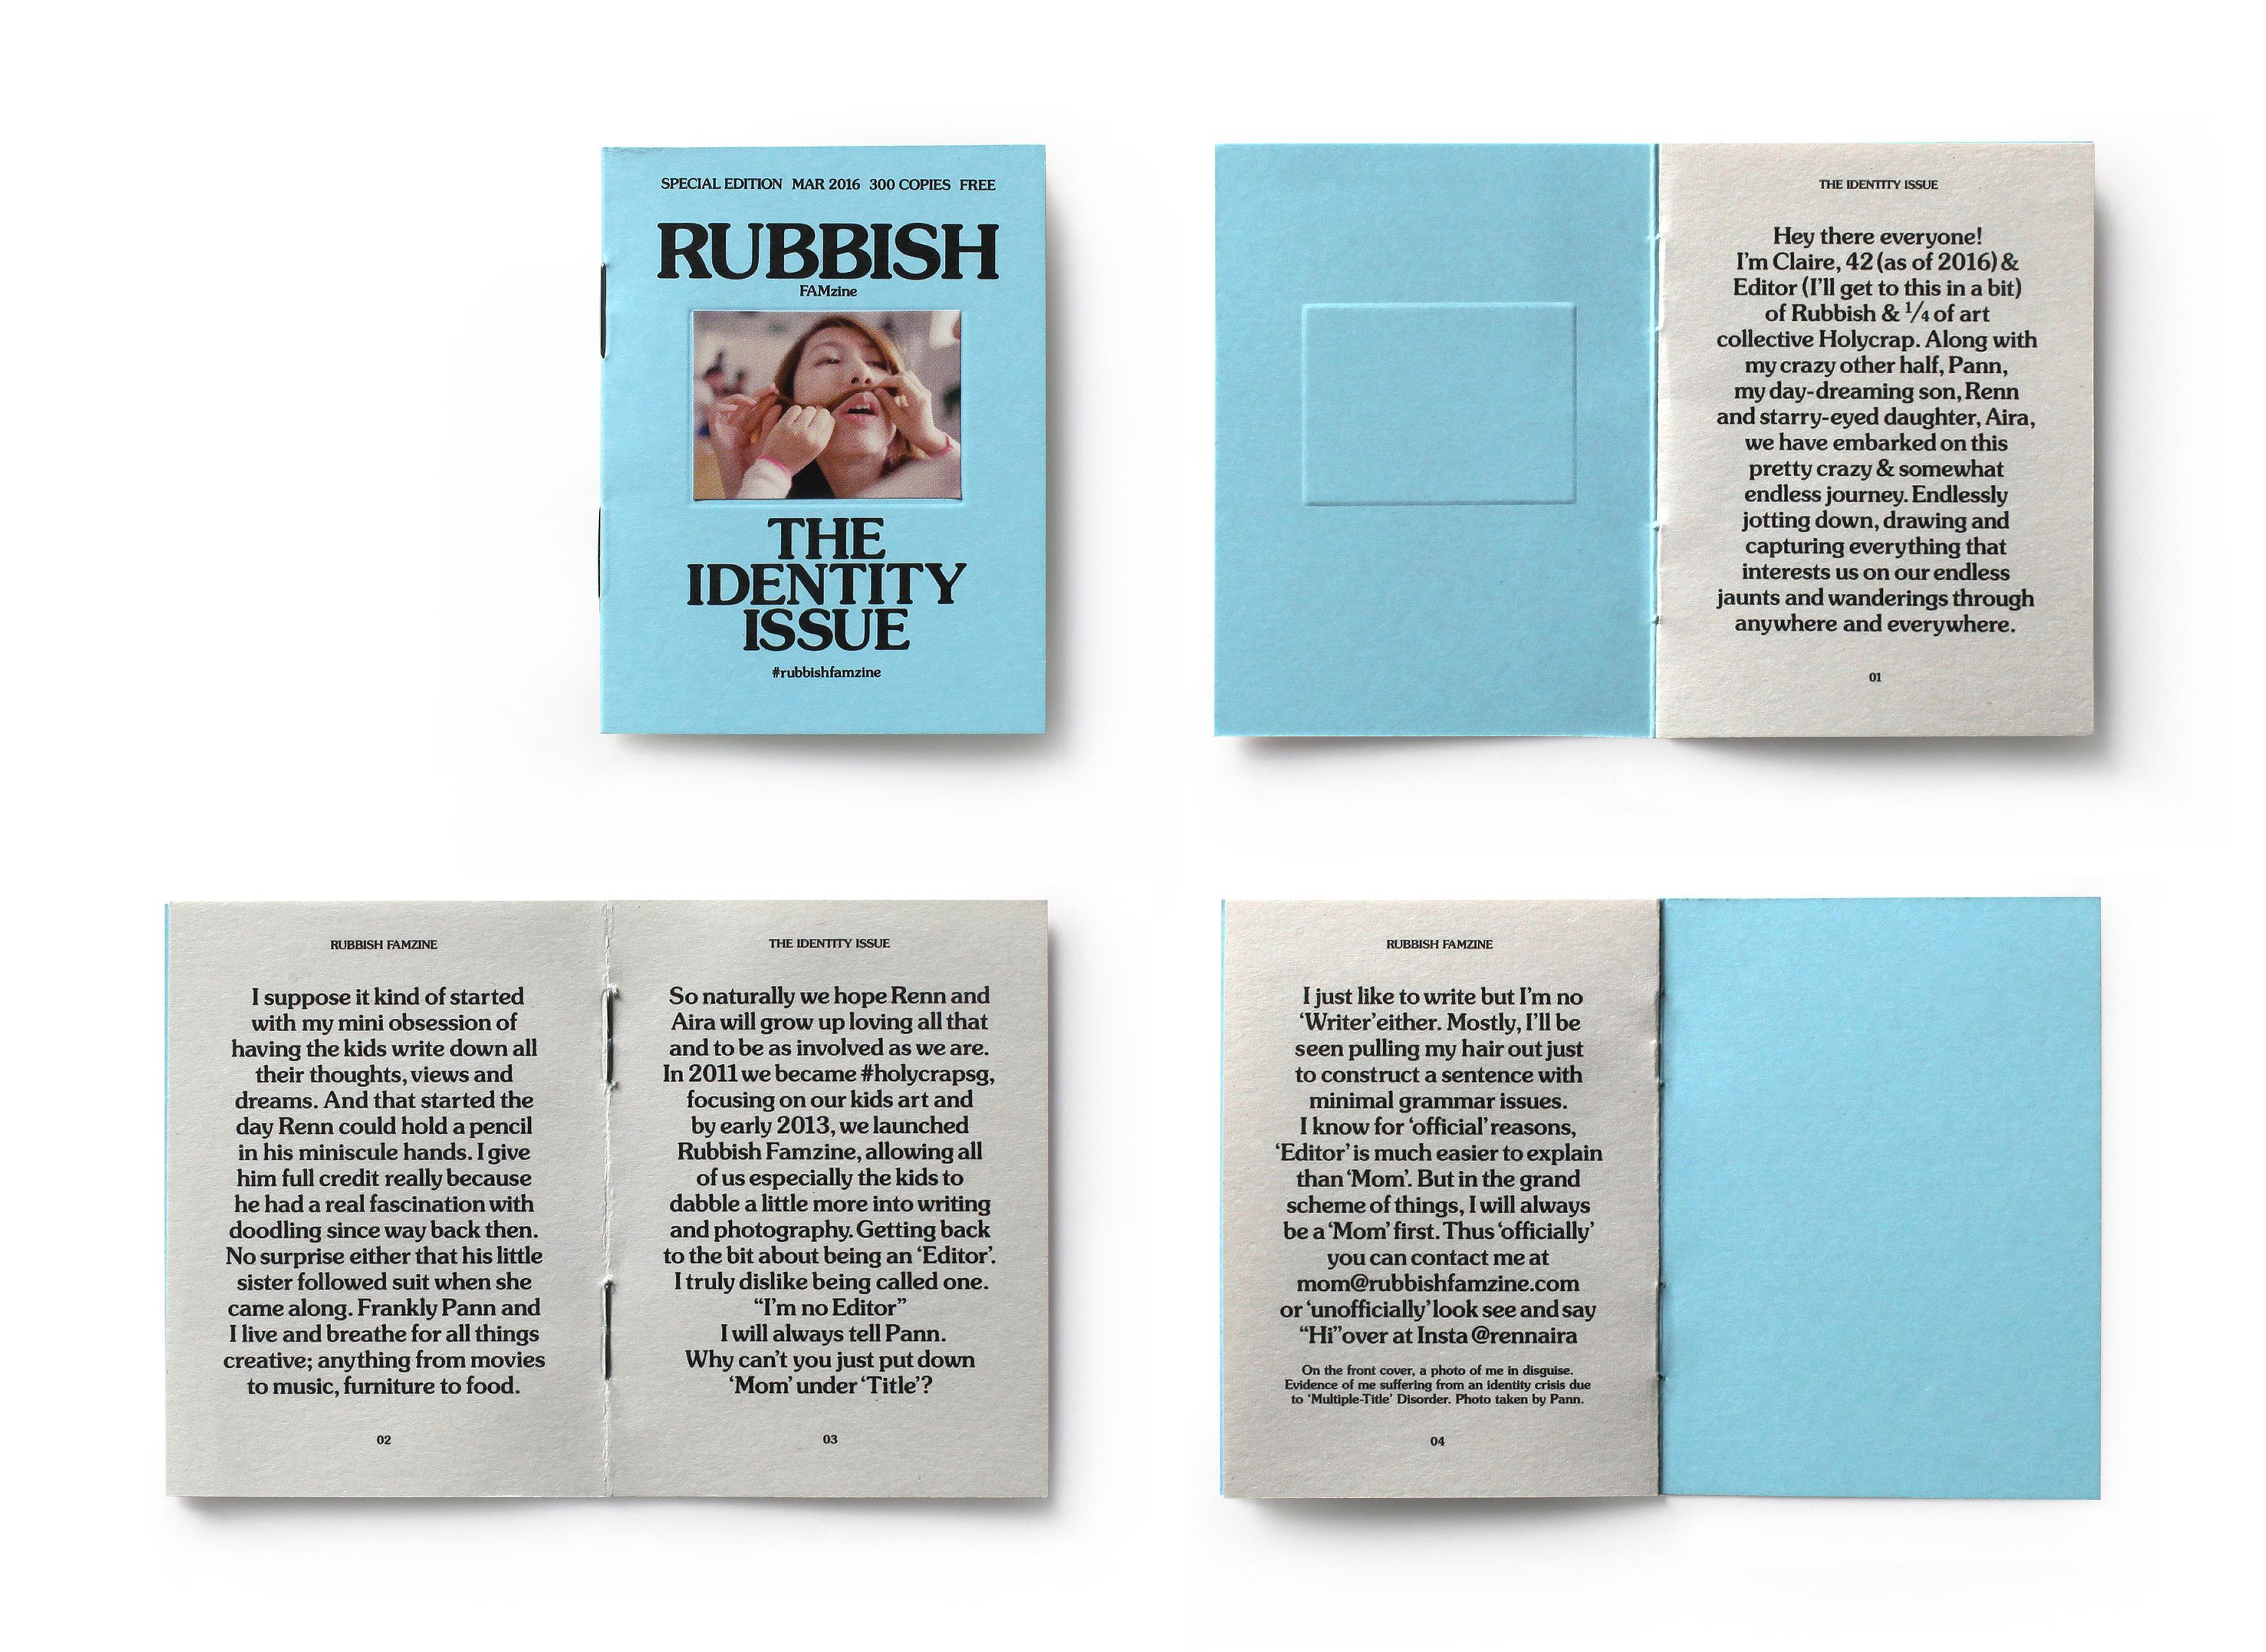 Rubbish Famzine The Identity Issue | Miniature Business Cards in ...